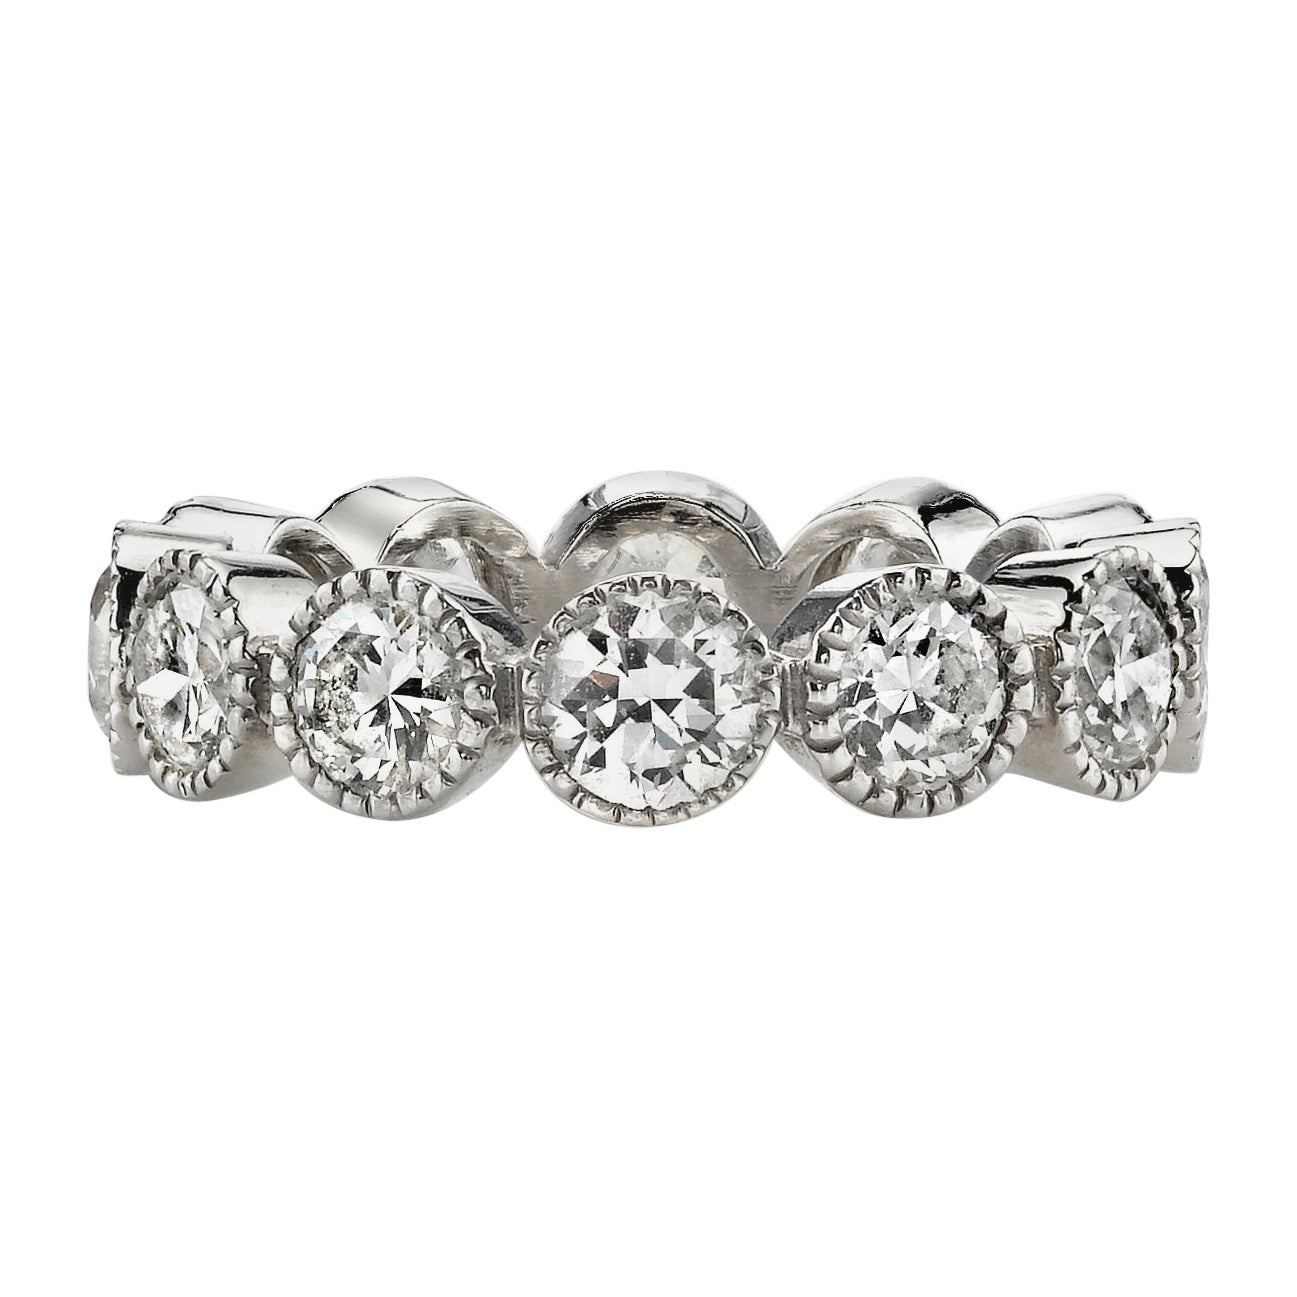 Old European Cut Diamonds Set in a Handcrafted Platinum Eternity Band